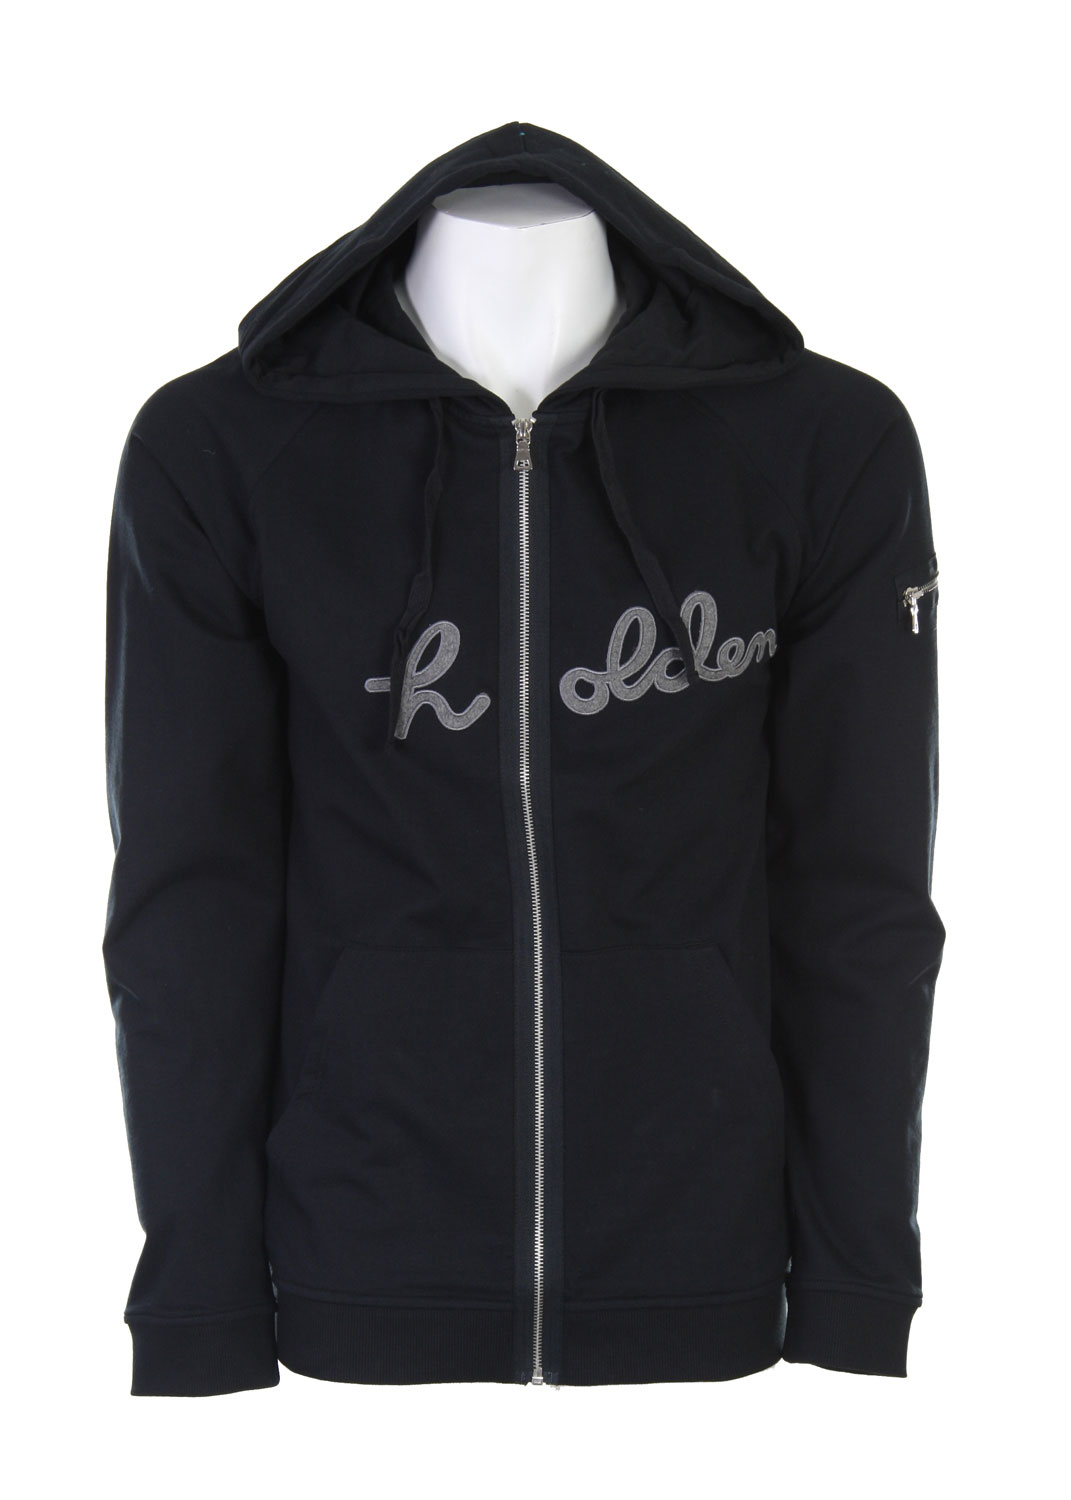 Do you hate how some hoodies make you look over weight because they are so bulky? Well if you hate bulky hoodies then you will love this Holden Logo Full Zip Hoodie. It's not made out of a ton of bulky material, it's just made out of some quality material, which means they could use less of it, and still acquire the same warmth as a bulky hoodie. This simple and sleek fitting design will really accent how great your body looks and won't add phantom weight to your frame. If you like to show off your great looking figure and stay warm while doing so, then this is the perfect hoodie for you.80 % Cotton / 20% Polyester - $37.95